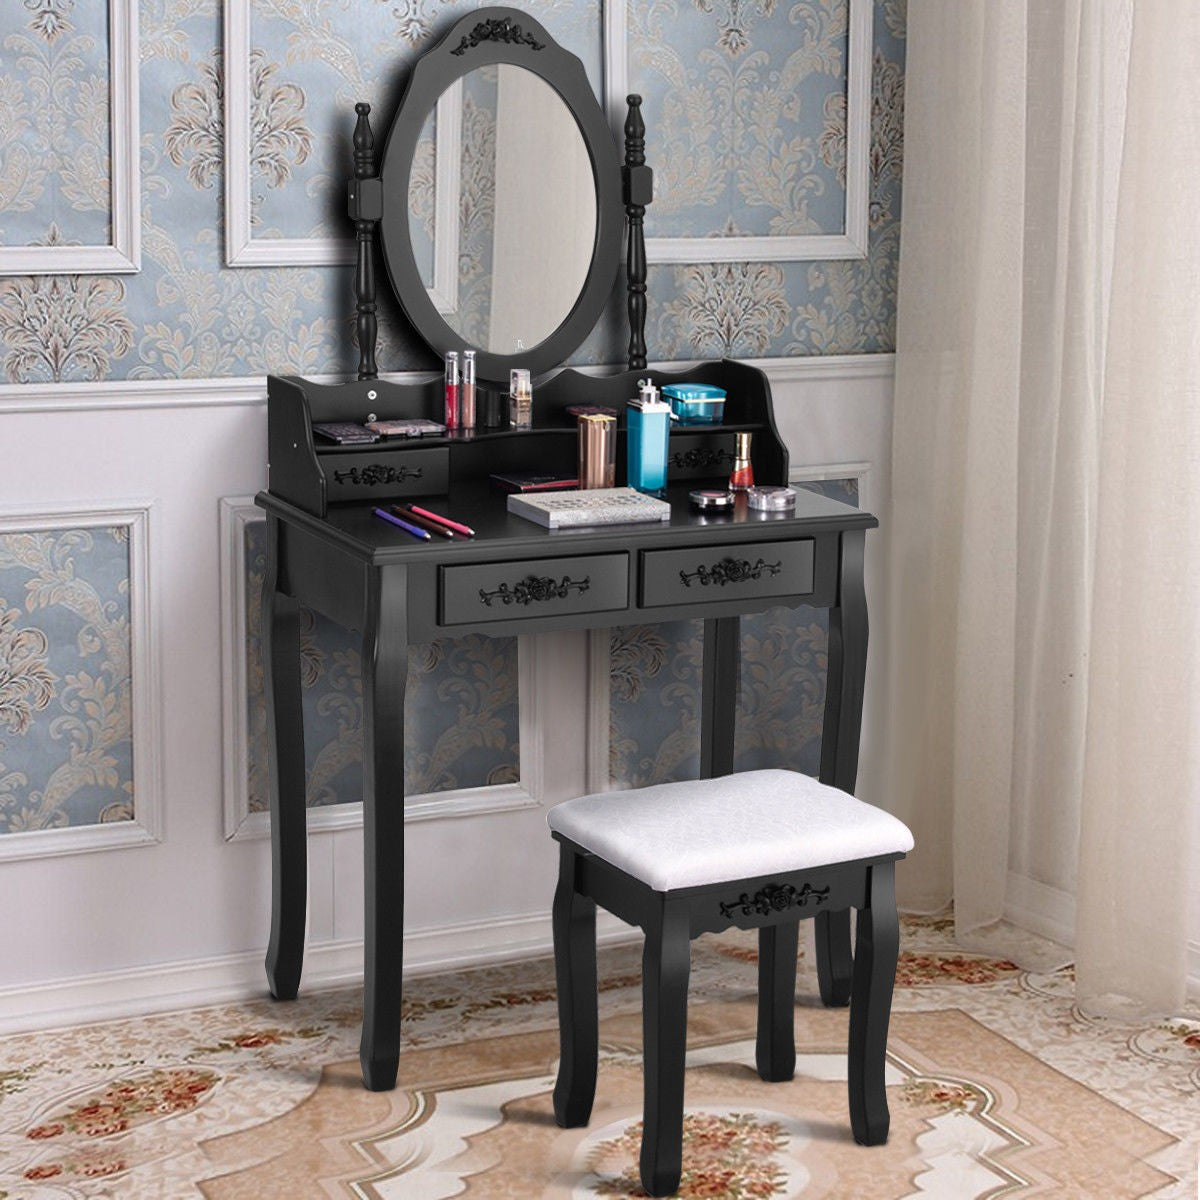 4 Drawers and Oval Mirror Makeup & Jewelry Storage Set